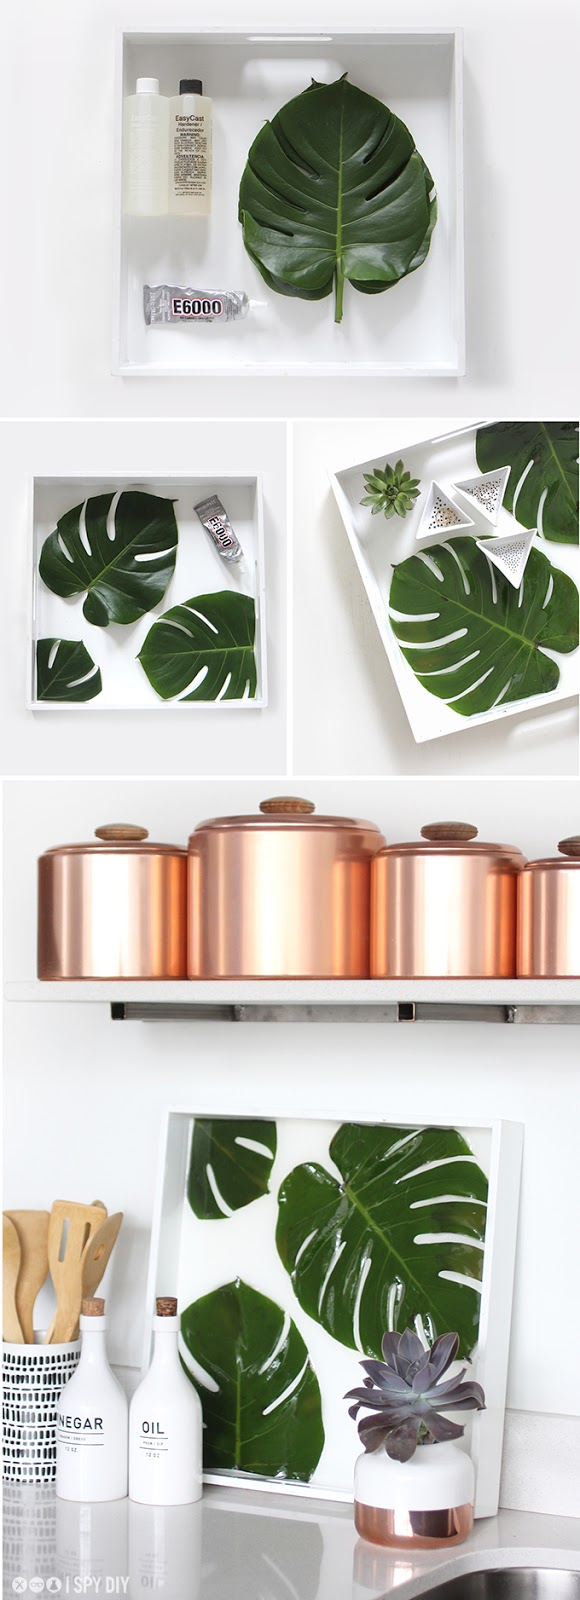 Bandeja diy con monstera